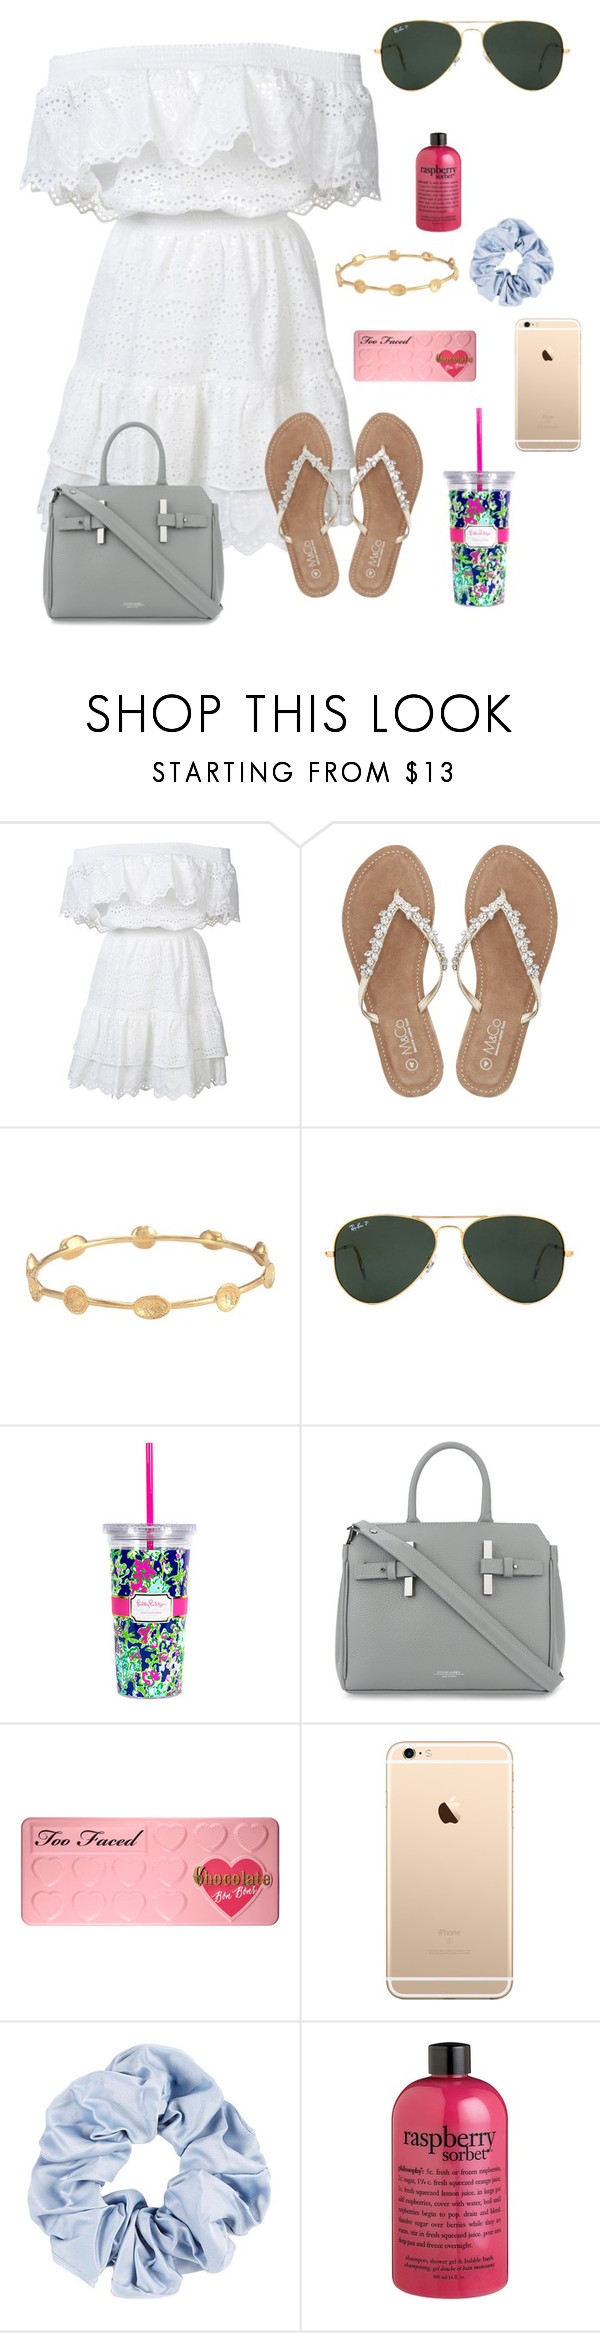 """""""In cape cod!!"""" by zoejm ❤ liked on Polyvore featuring LoveShackFancy, M&Co, Melinda Maria, Ray-Ban, Lilly Pulitzer, Estemporanea, Too Faced Cosmetics and philosophy"""